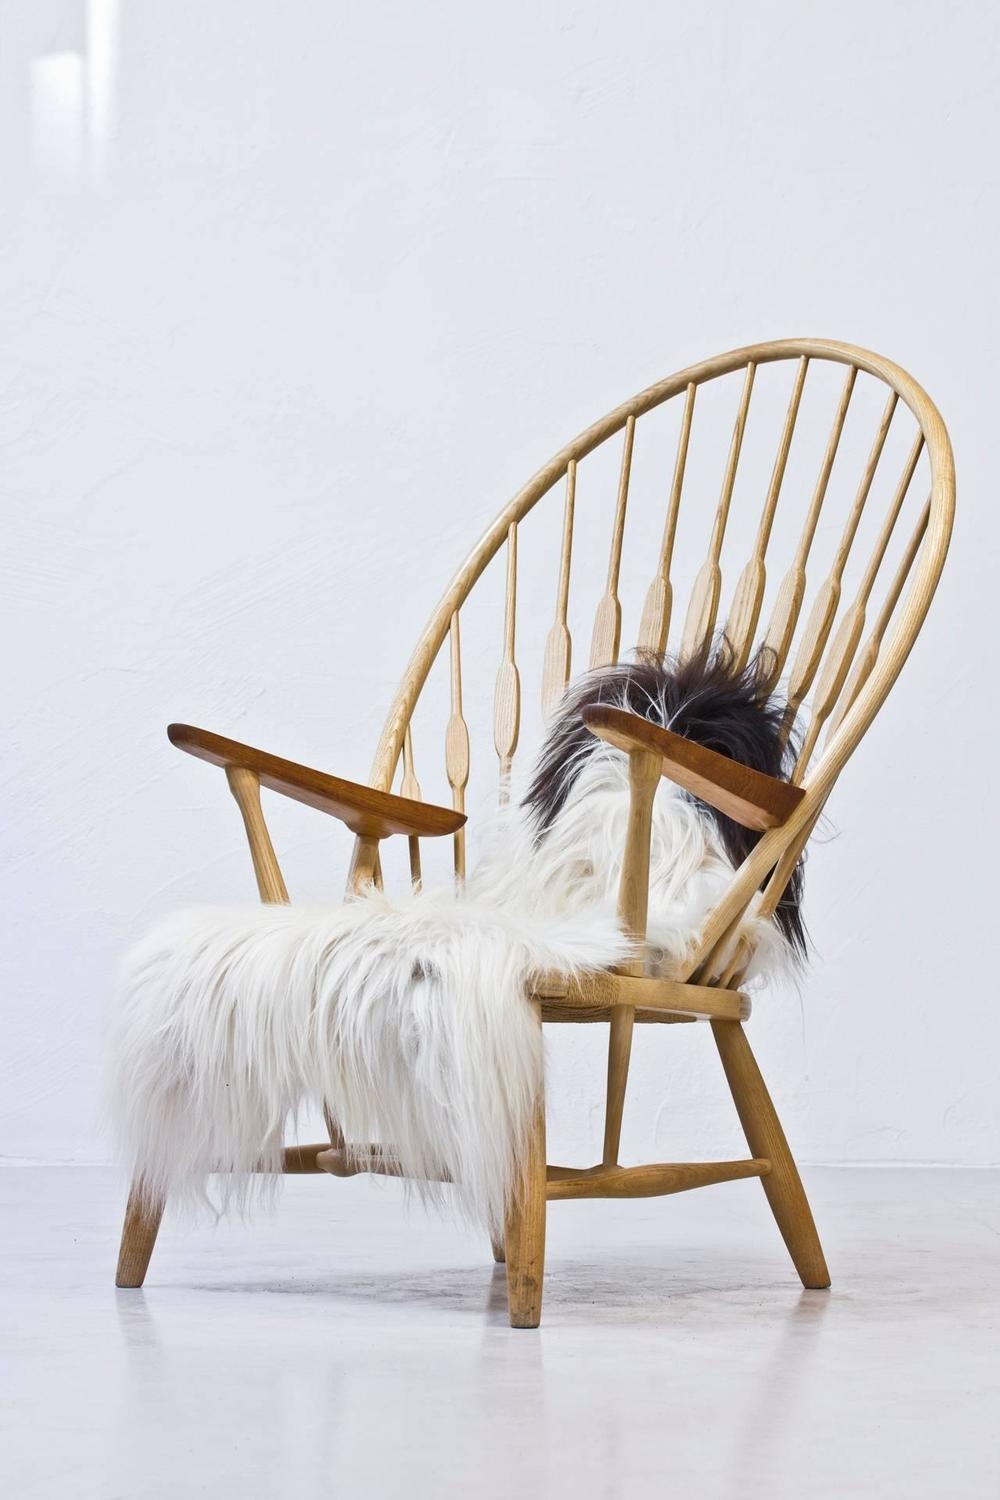 peacock-chair-with-sheepskin-throw-by-hans-j-wegner-for